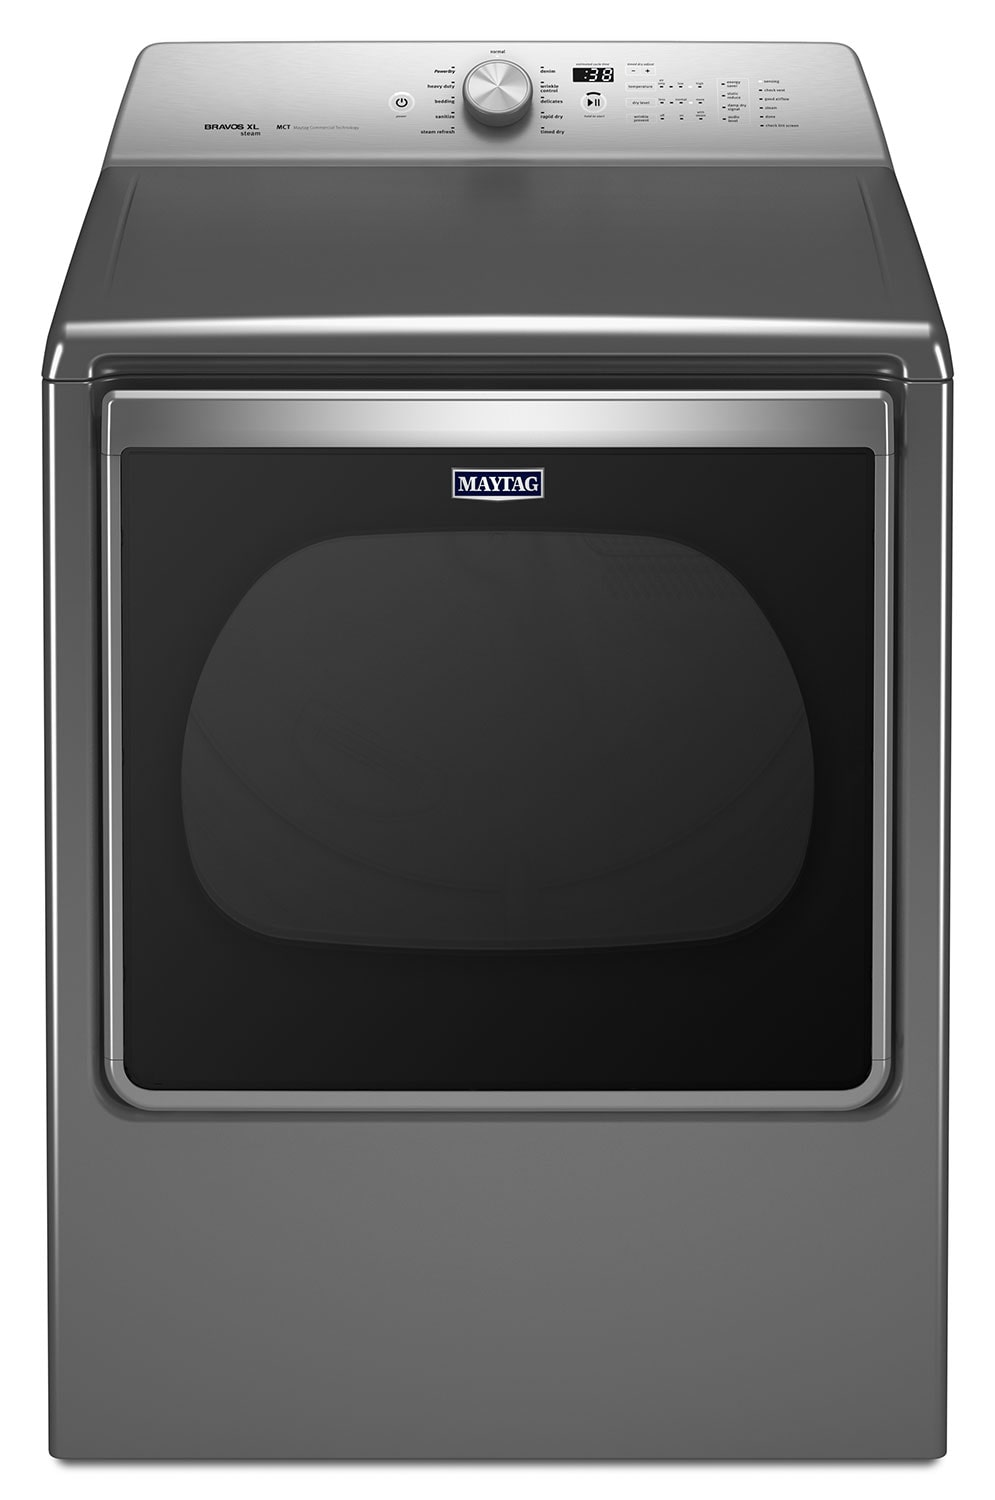 Maytag 8.8 Cu. Ft. Gas Dryer – MGDB855DC